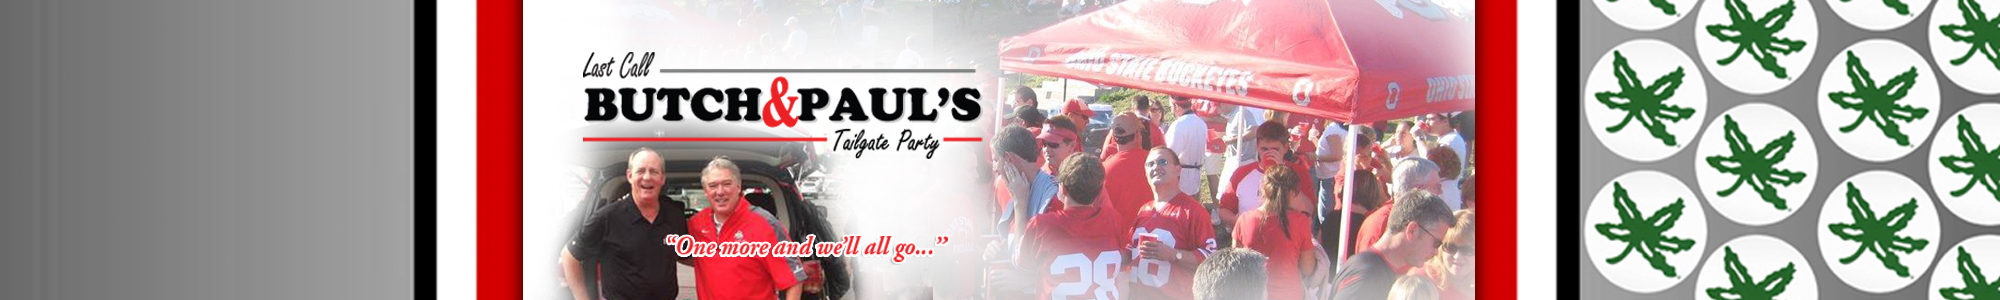 Butch & Paul's Tailgate